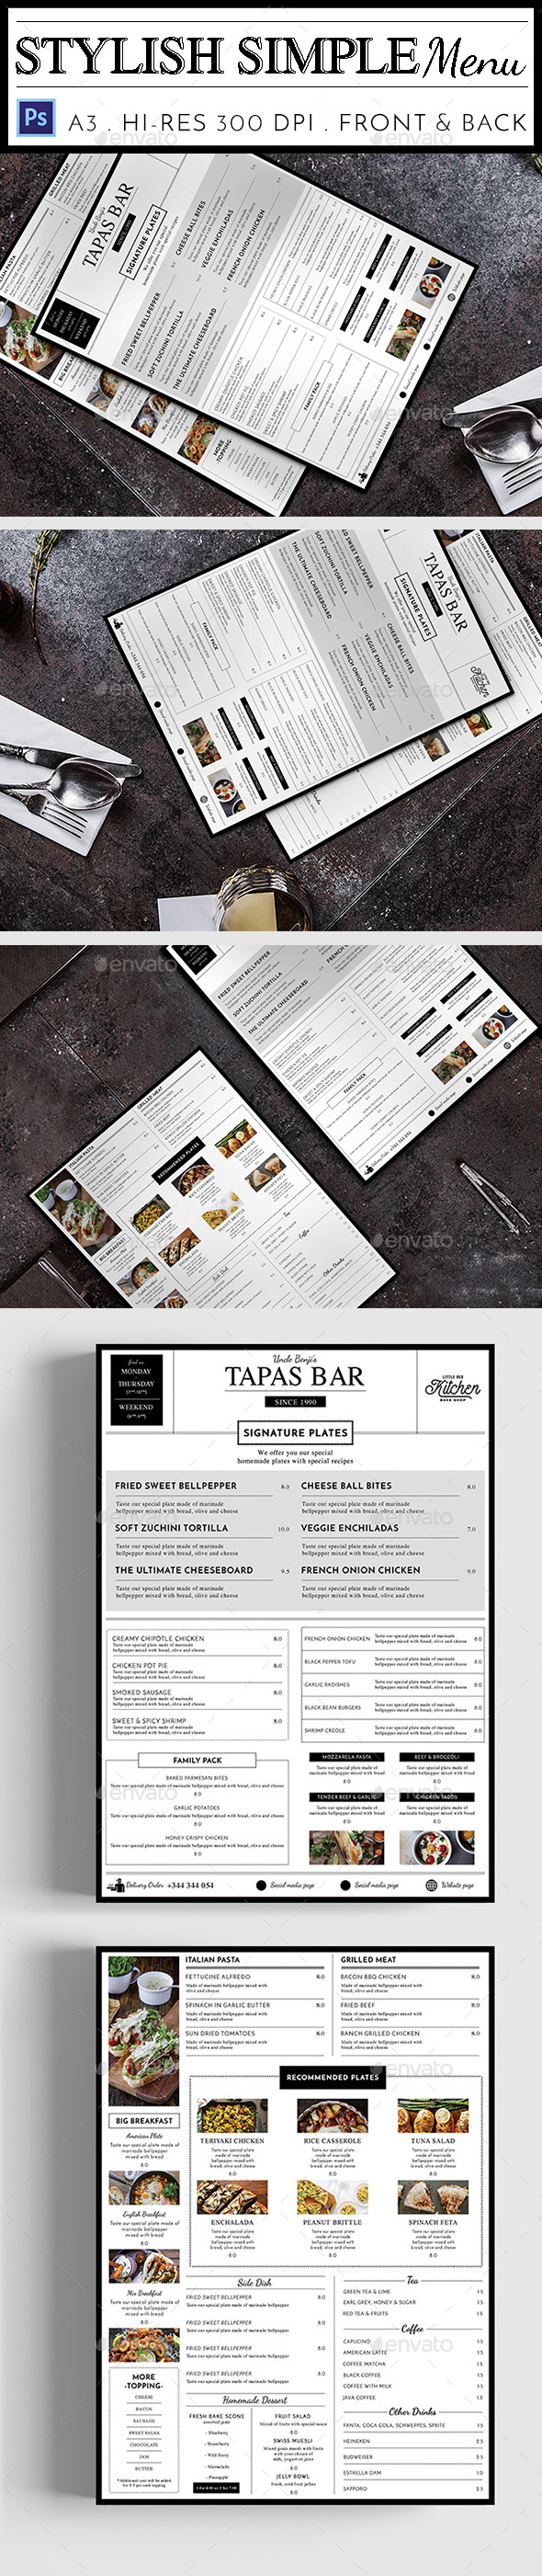 Stylish Simple Menu